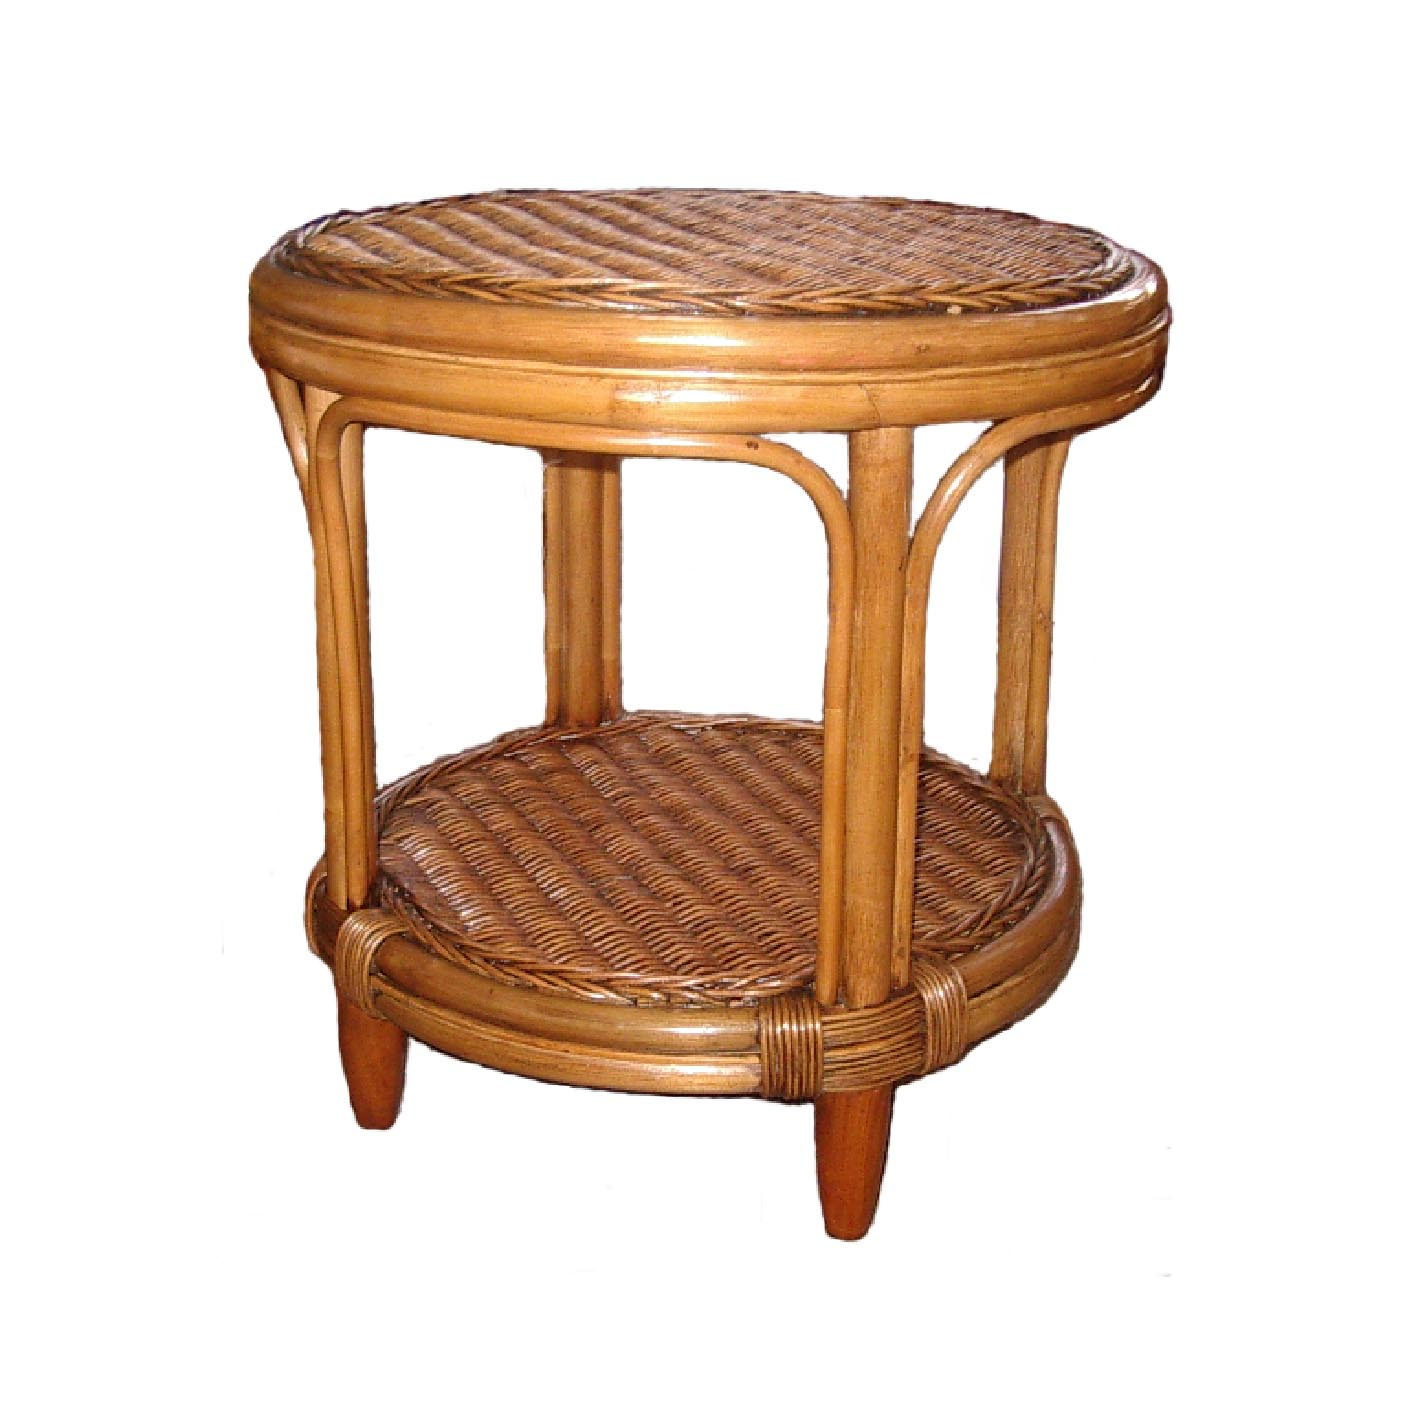 Manuel Cane & Wicker Side Table